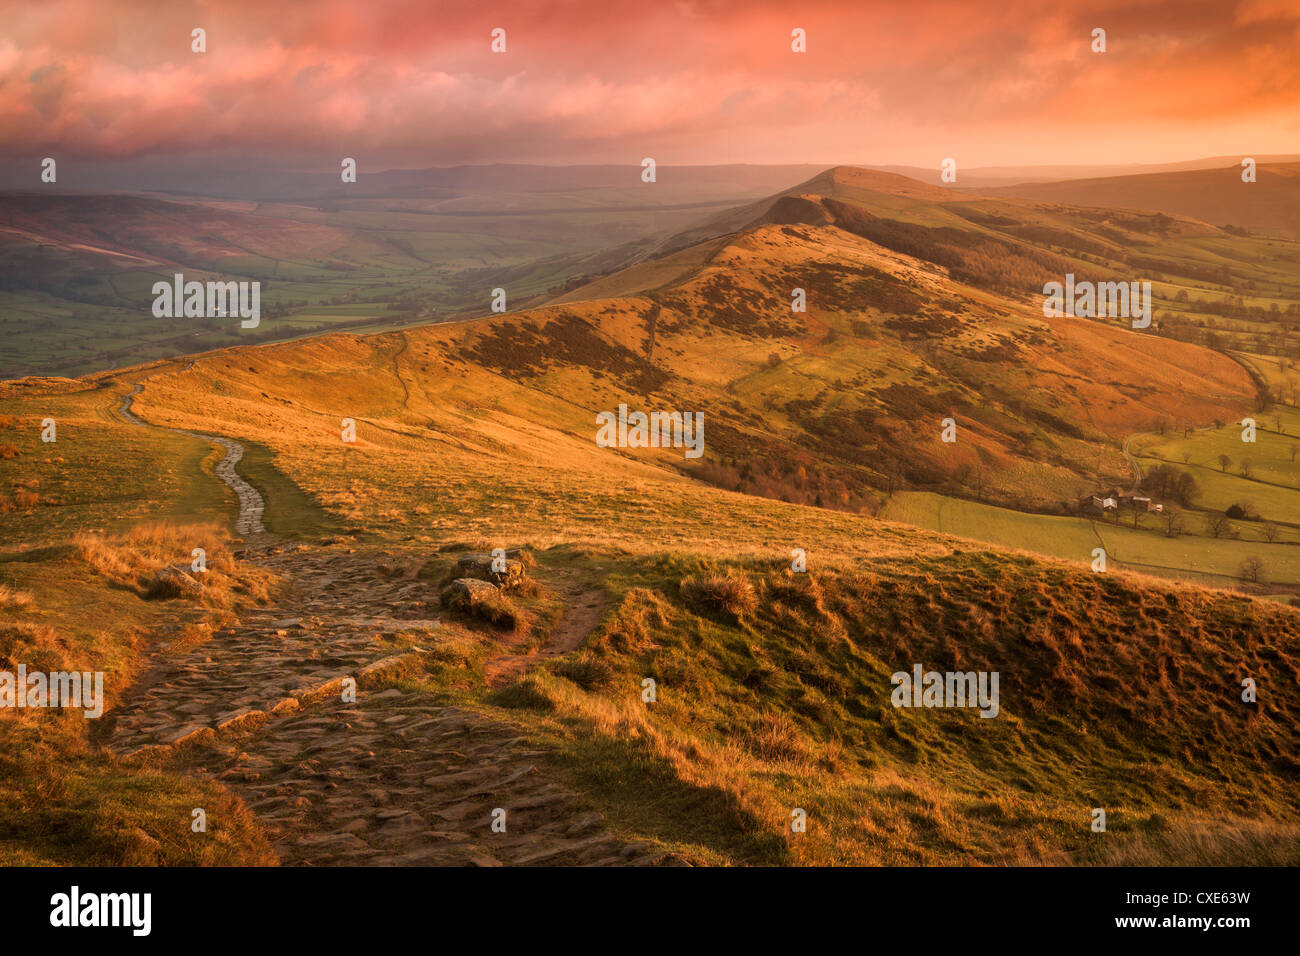 Sunrise light on The Great Ridge, Hope Valley, Peak District National Park, Derbyshire, England, United Kingdom, Stock Photo